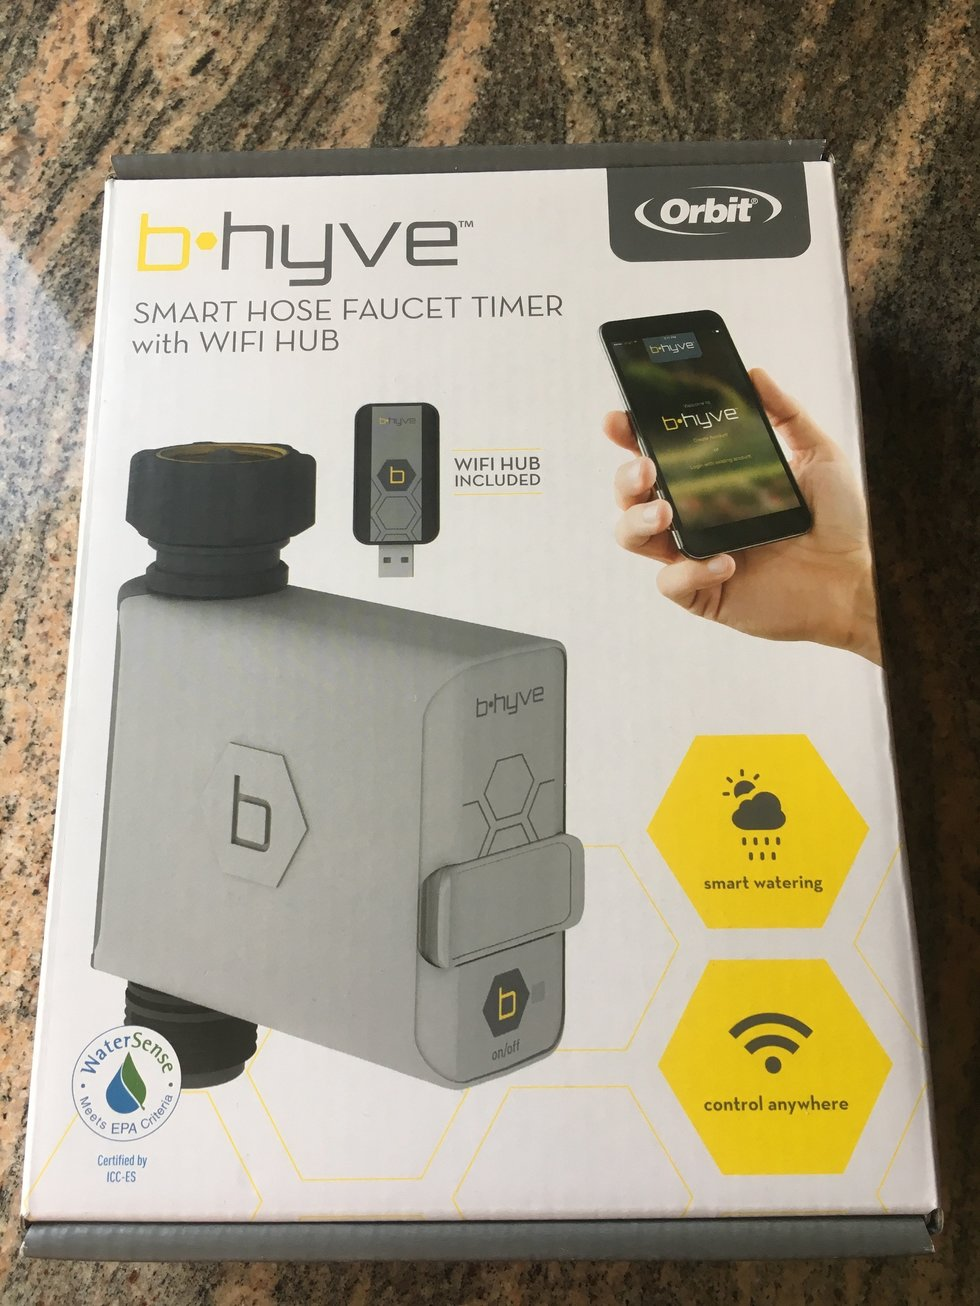 Picture of the box of Orbit Bhyve smart hose faucet.